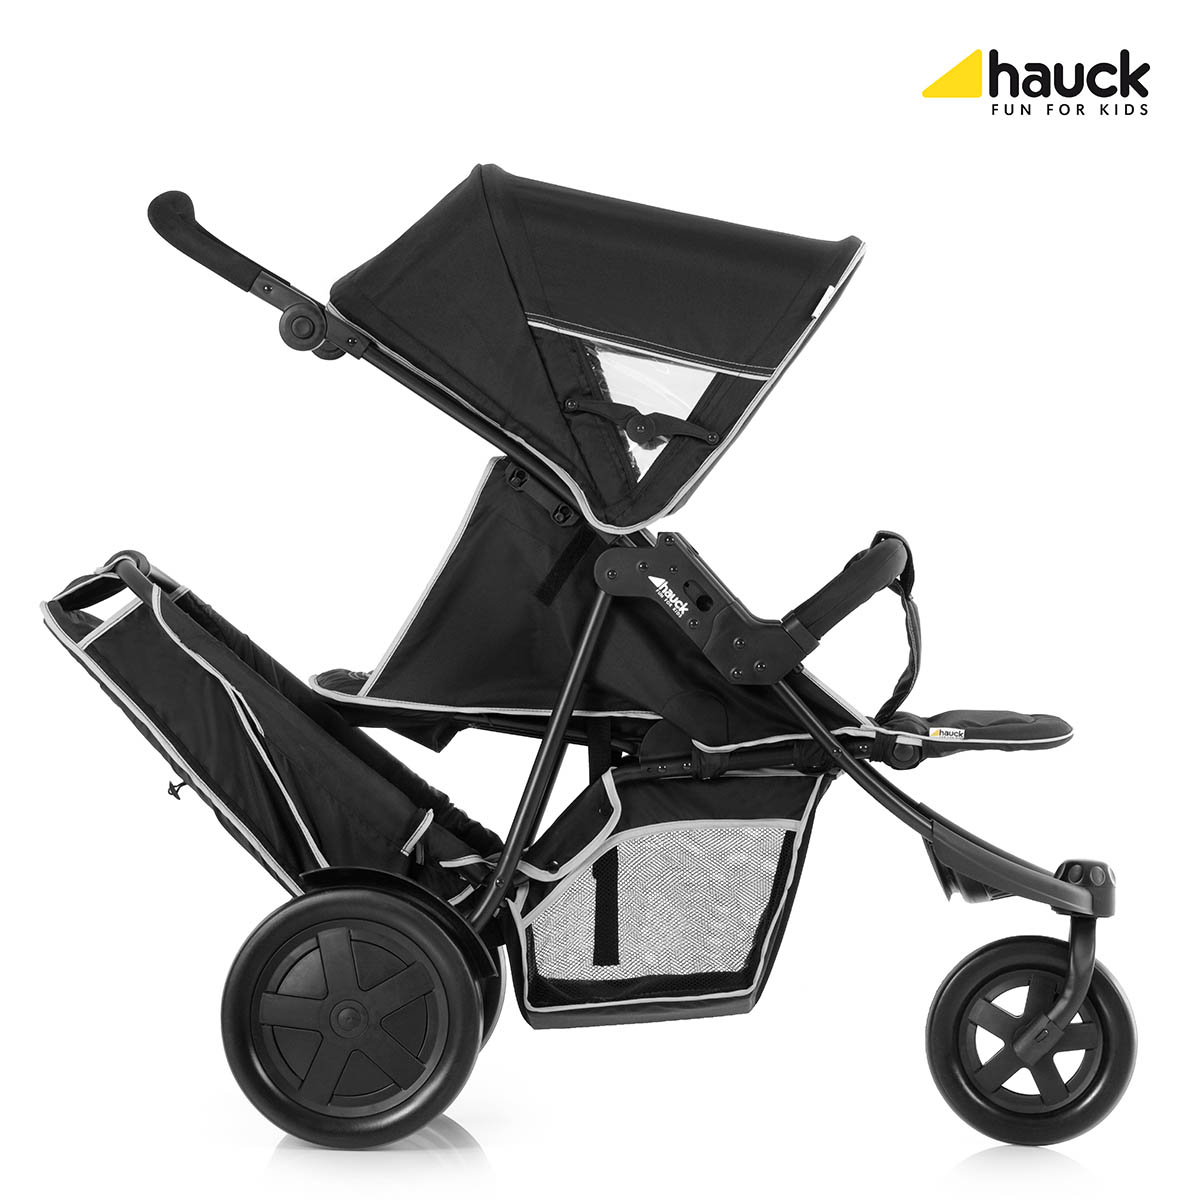 Hauck Freerider Single Twin Stroller Black